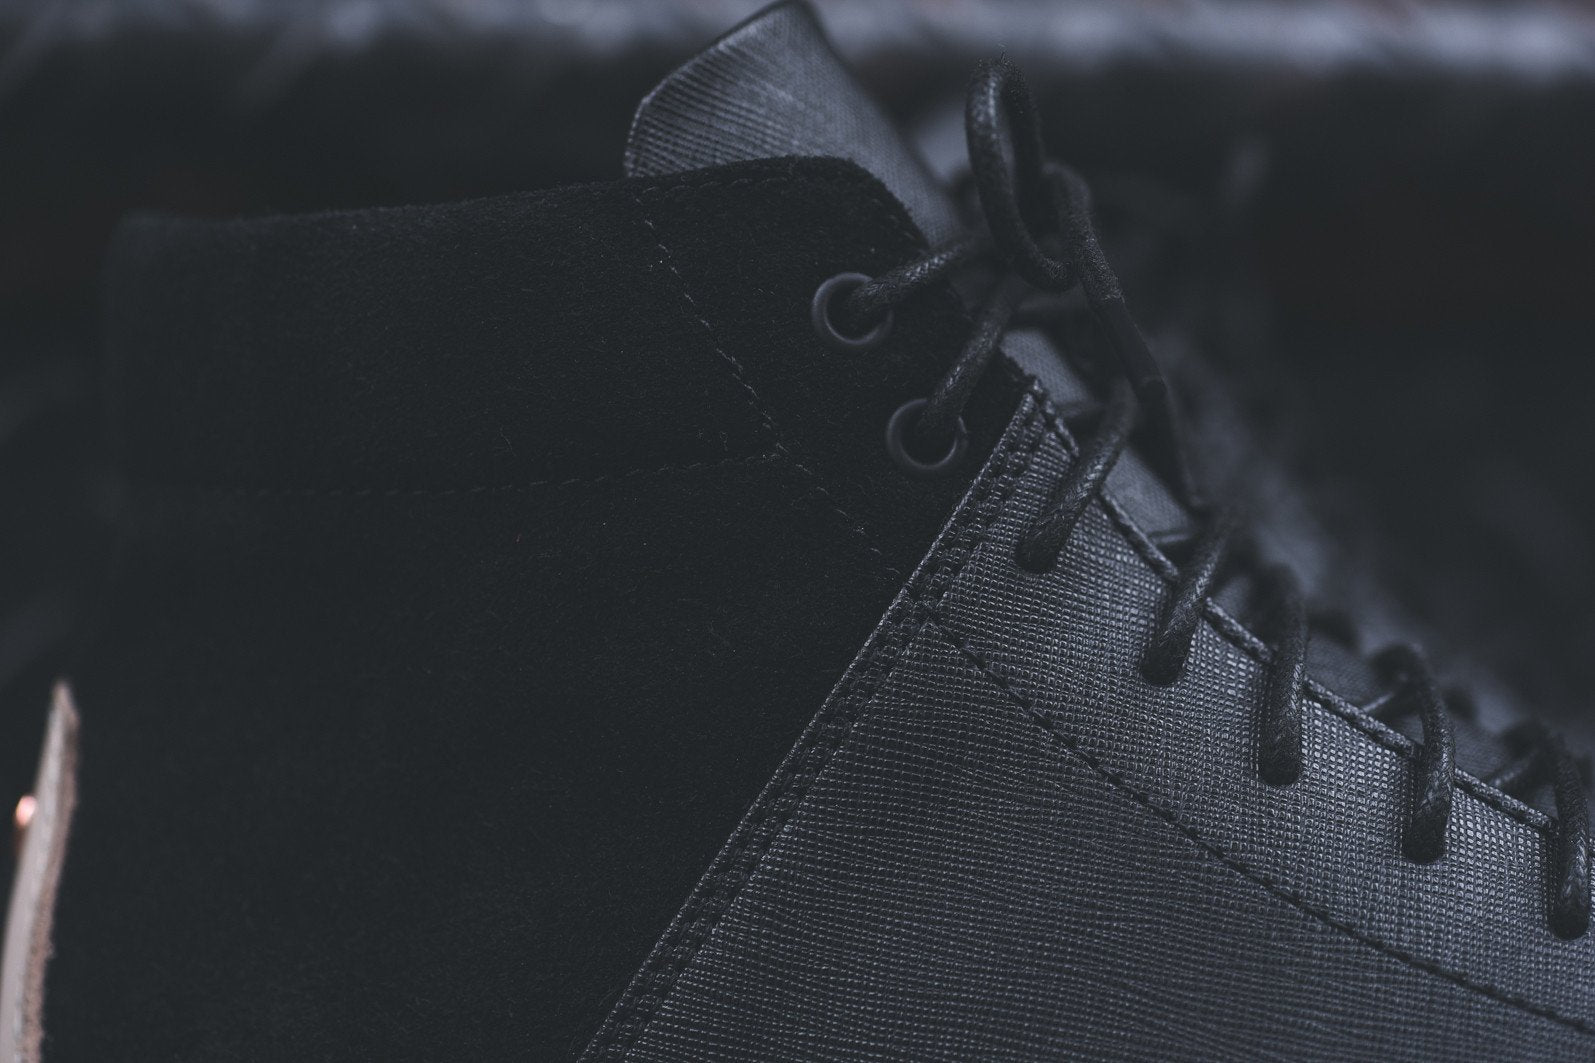 TCG Porter - Black Saffiano Leather